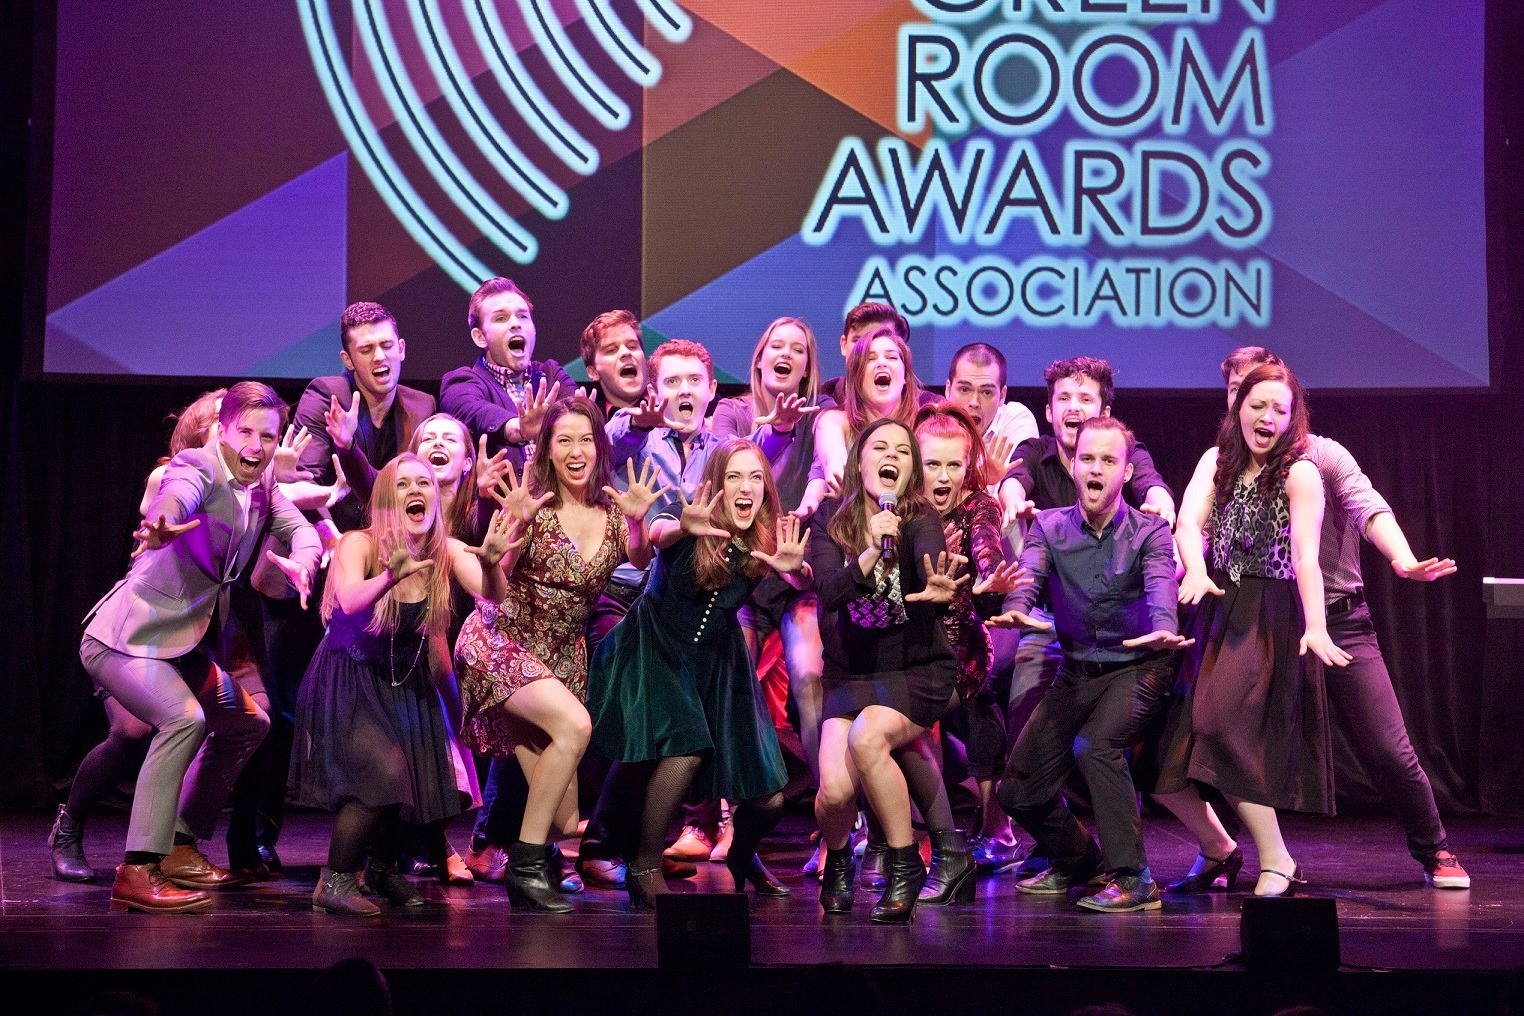 The 35th Annual Green Room Awards [Melbourne]